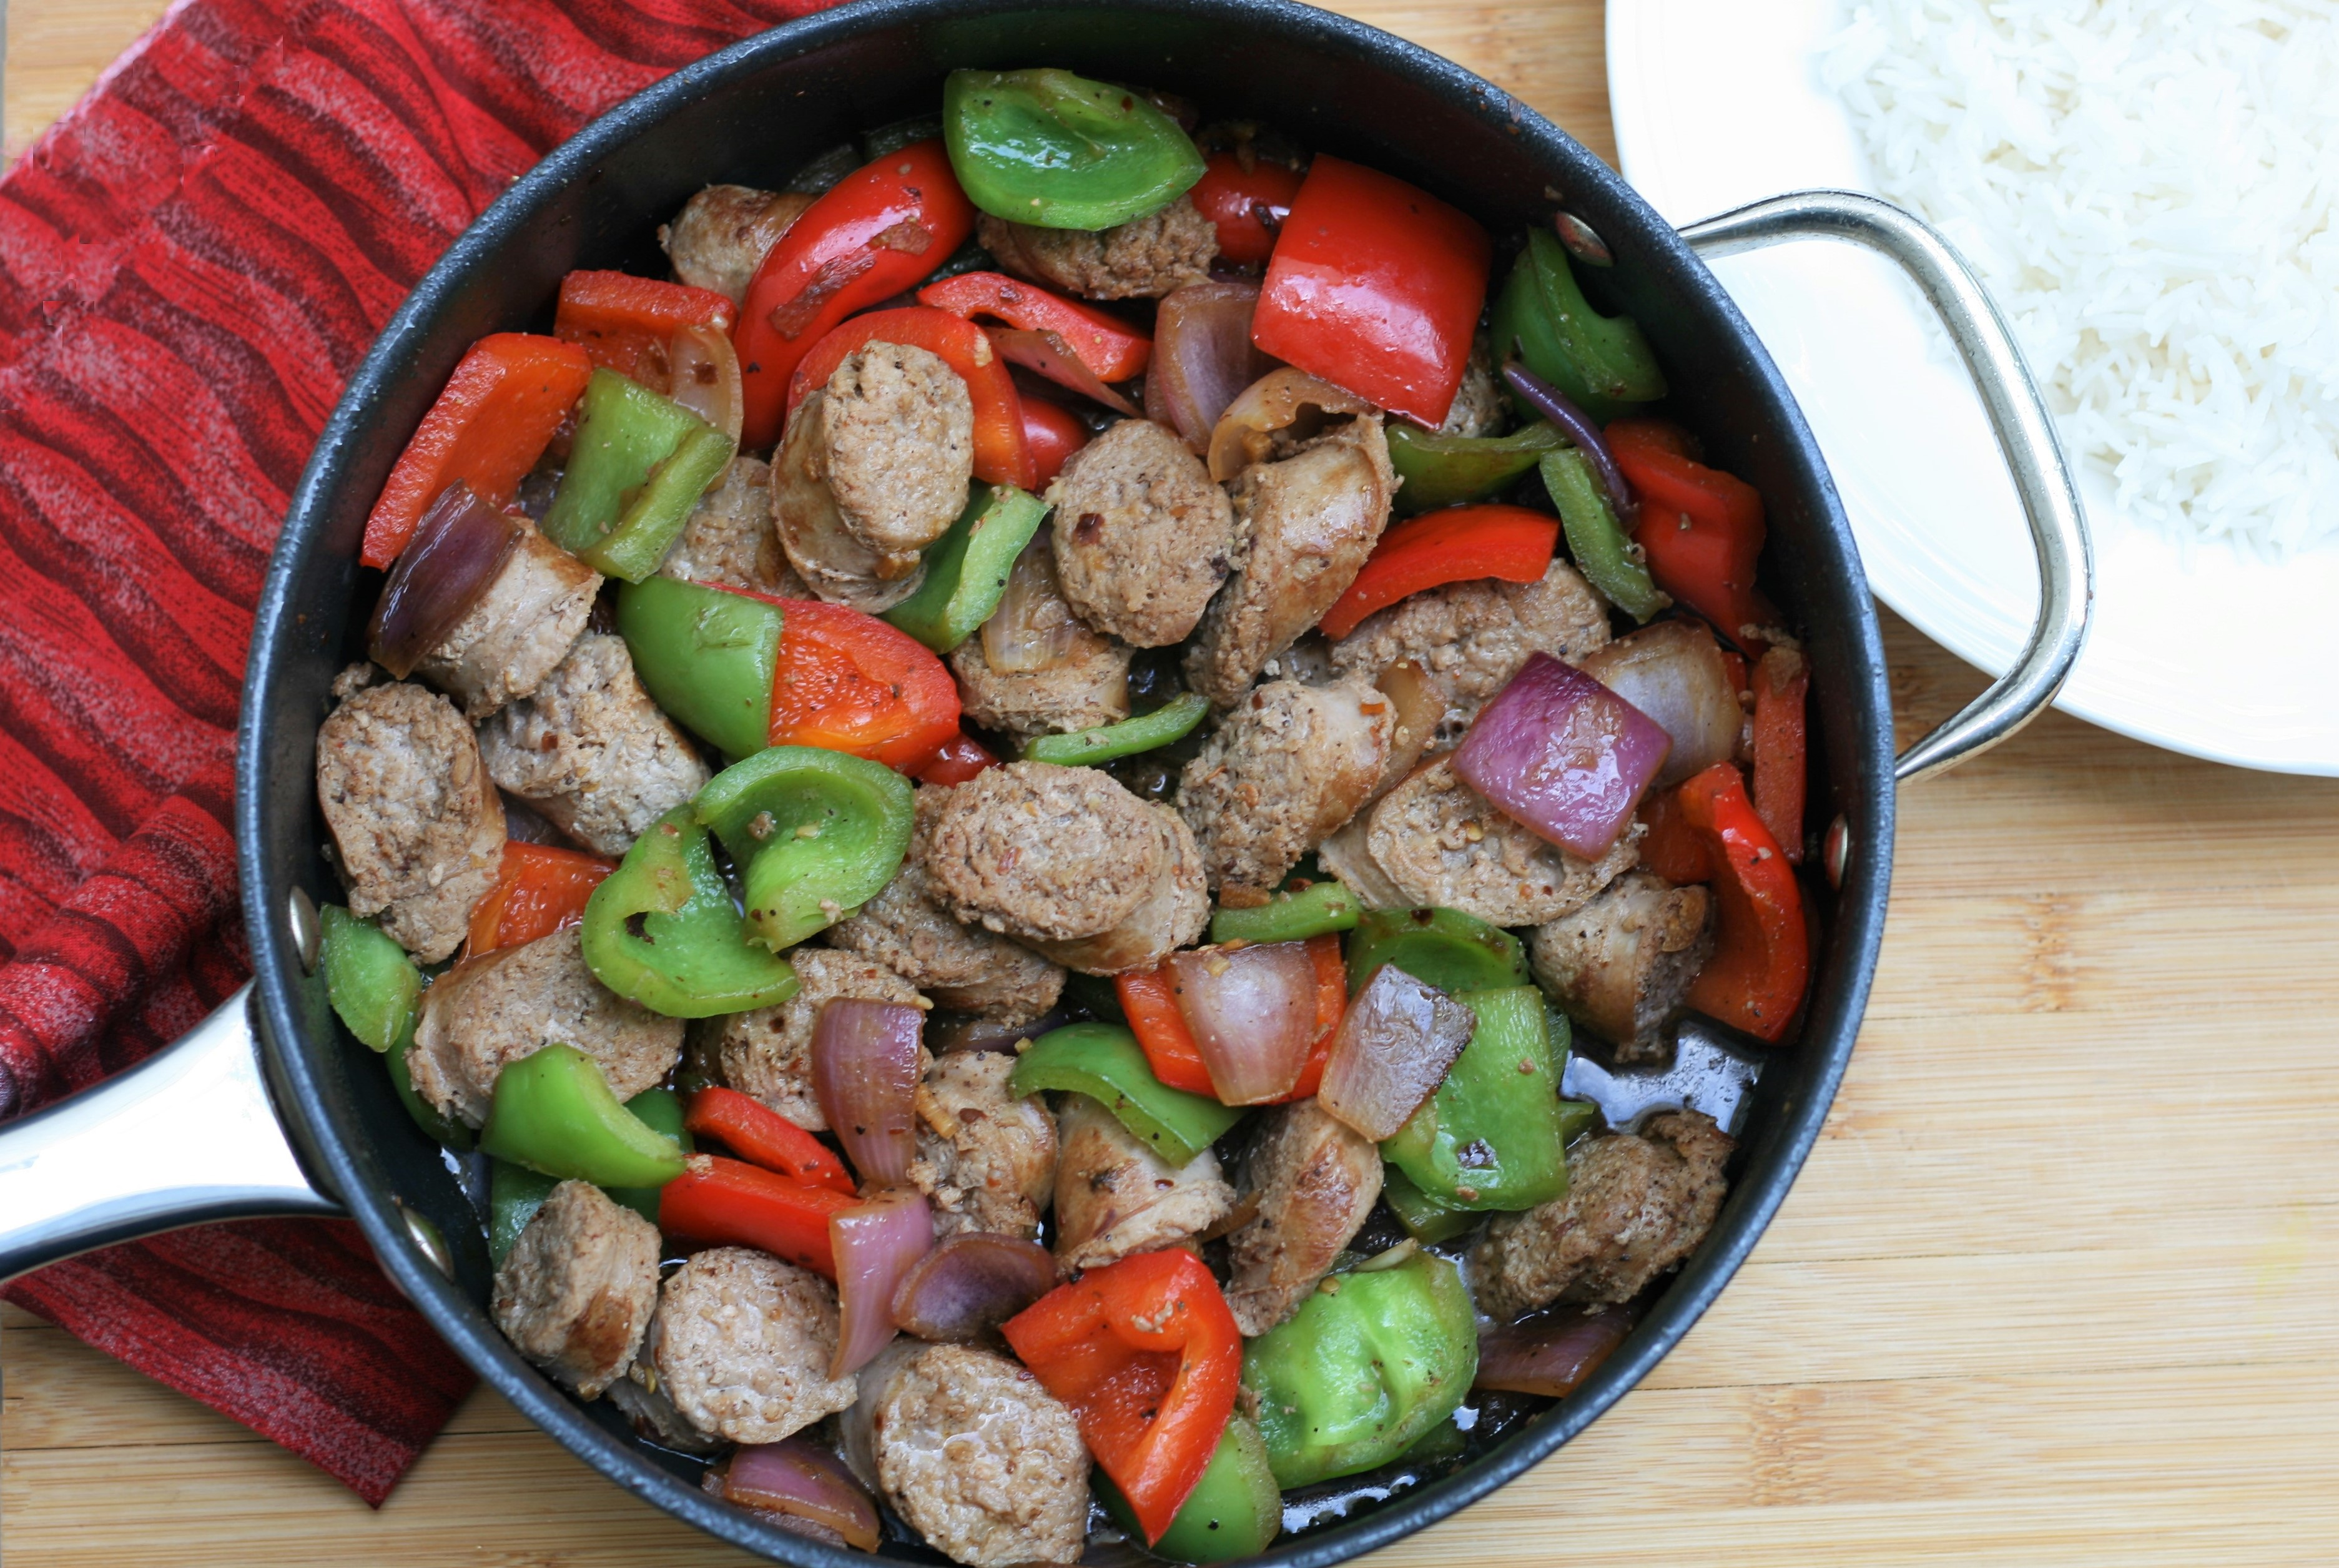 Turkey Sausage and Pepper Skillet